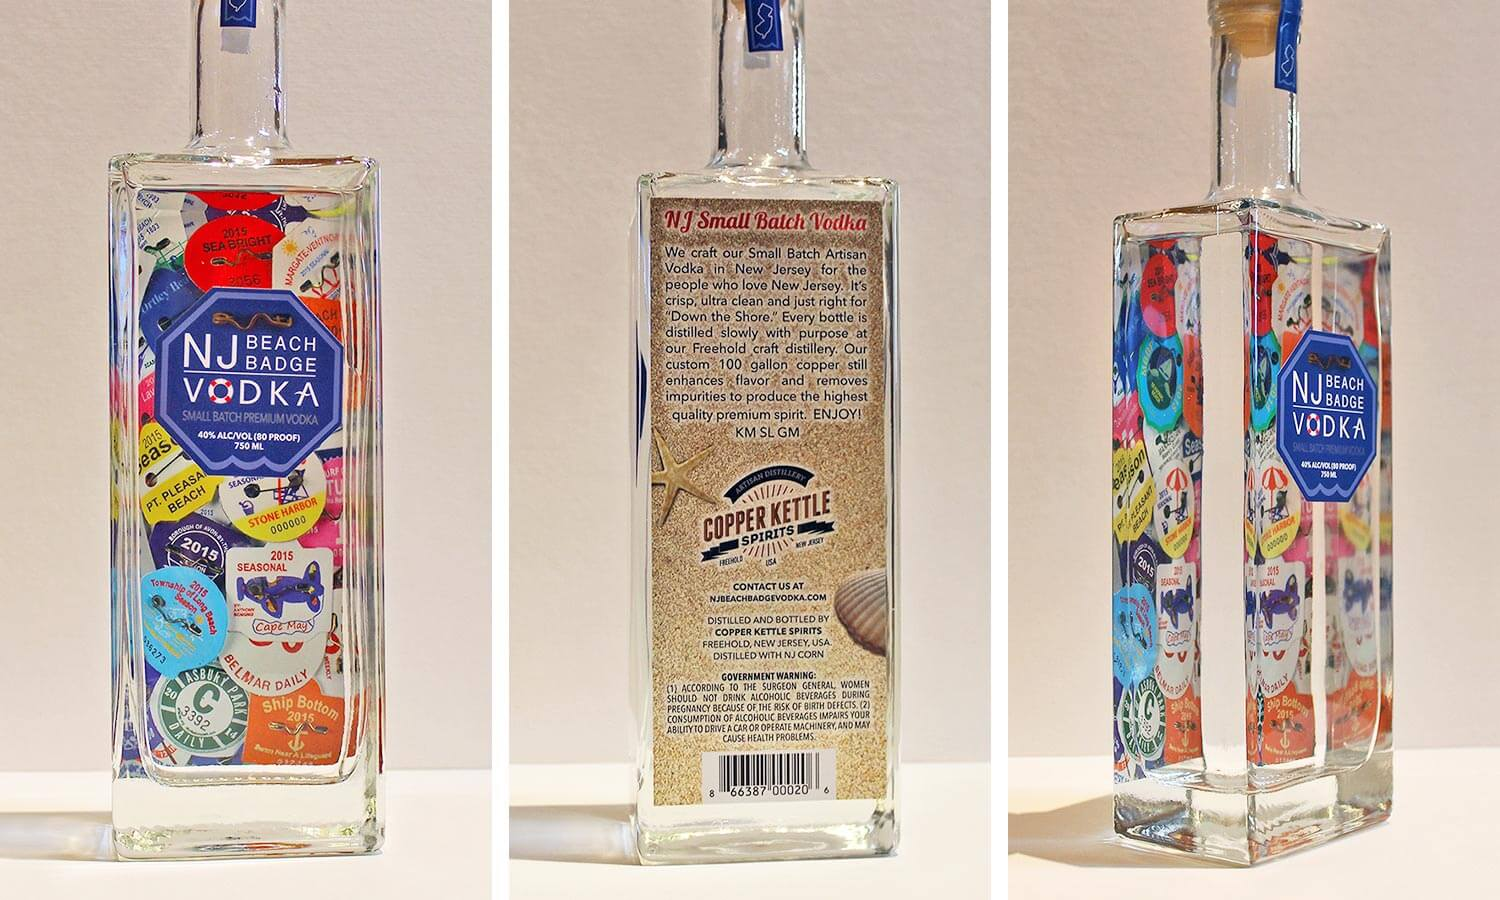 NJ Beach Badge Vodka Branding